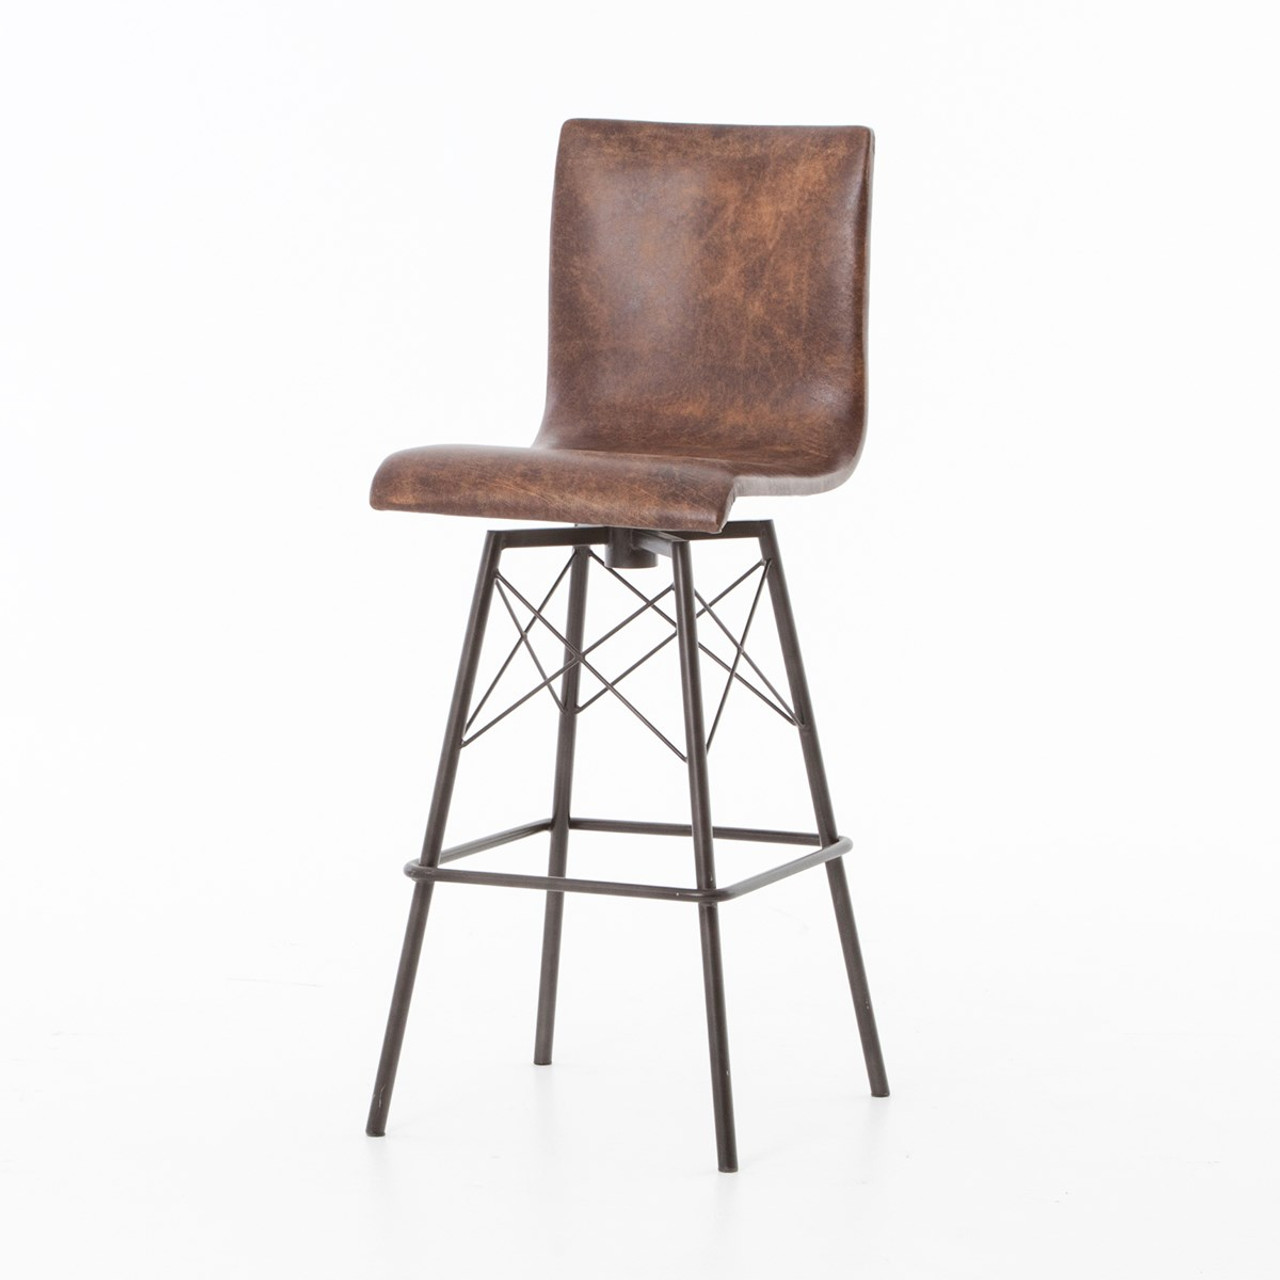 Diaw distressed leather swivel barstool